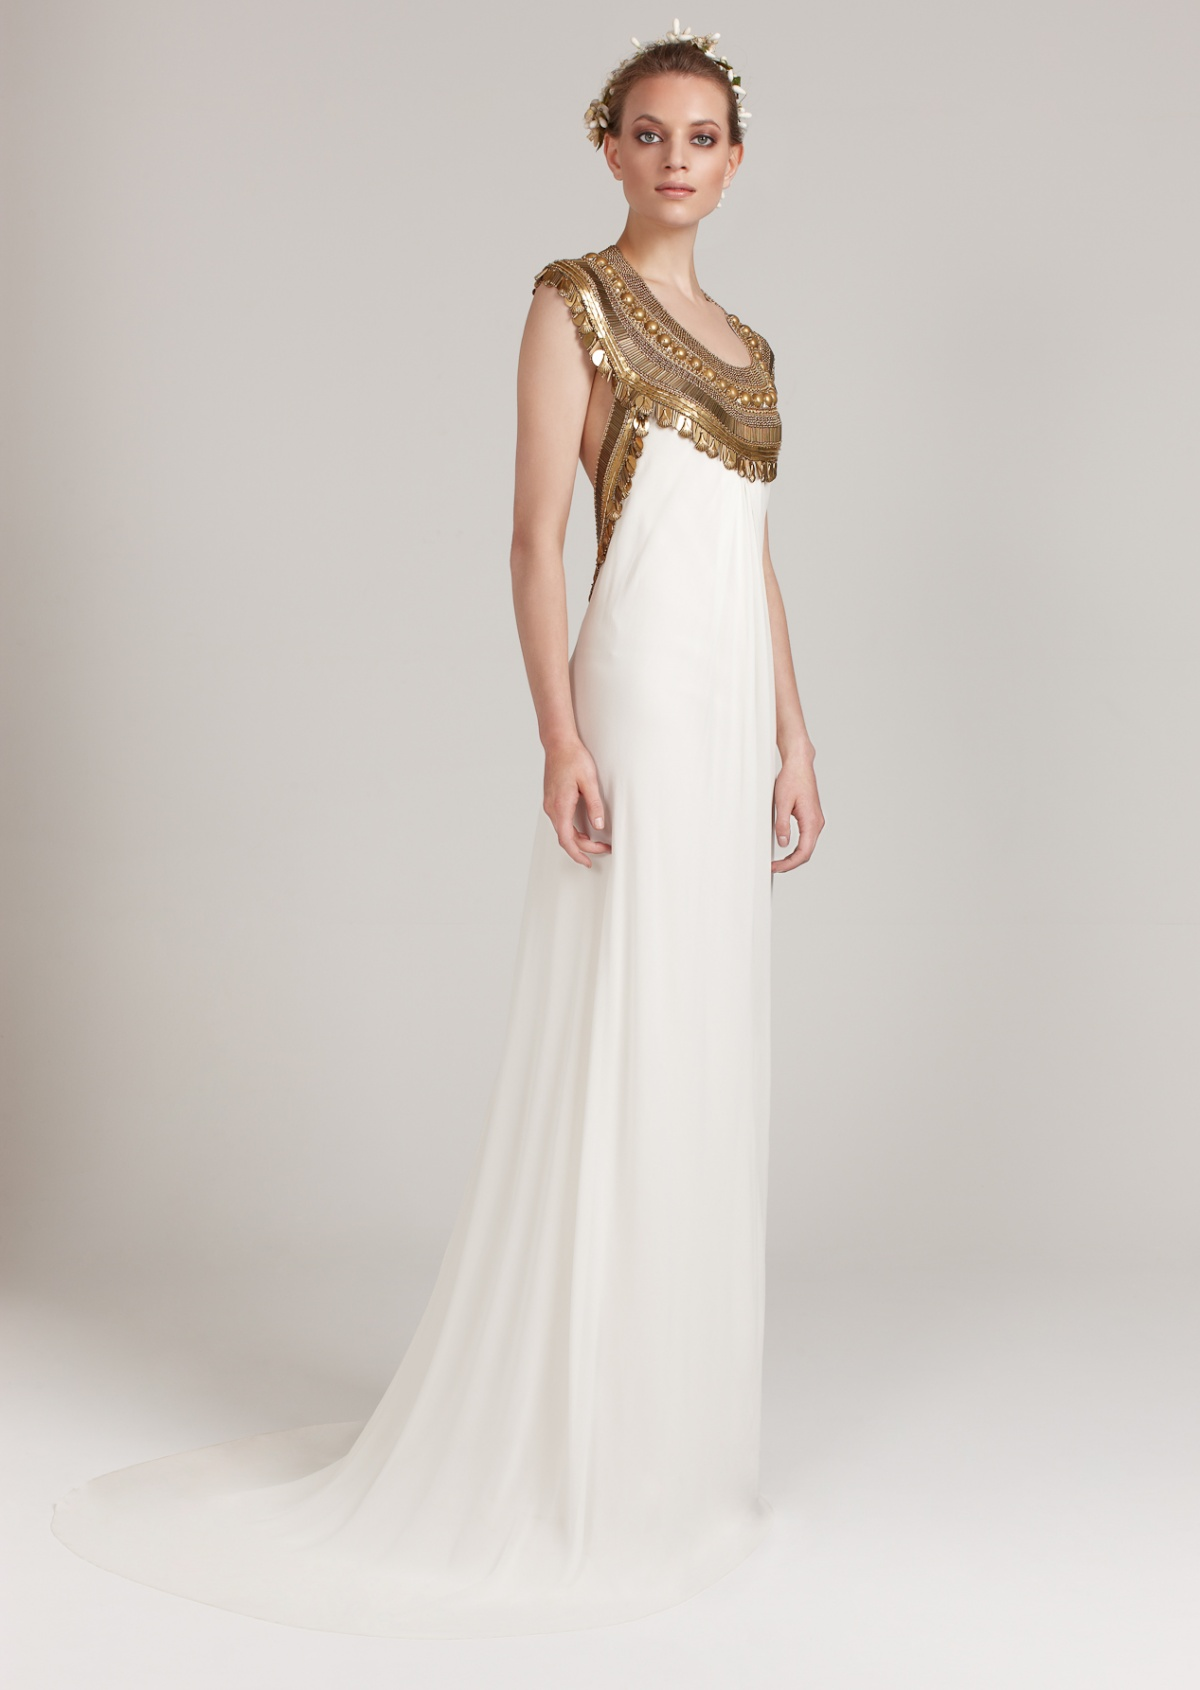 20110621165124 1 for Greek goddess style wedding dresses